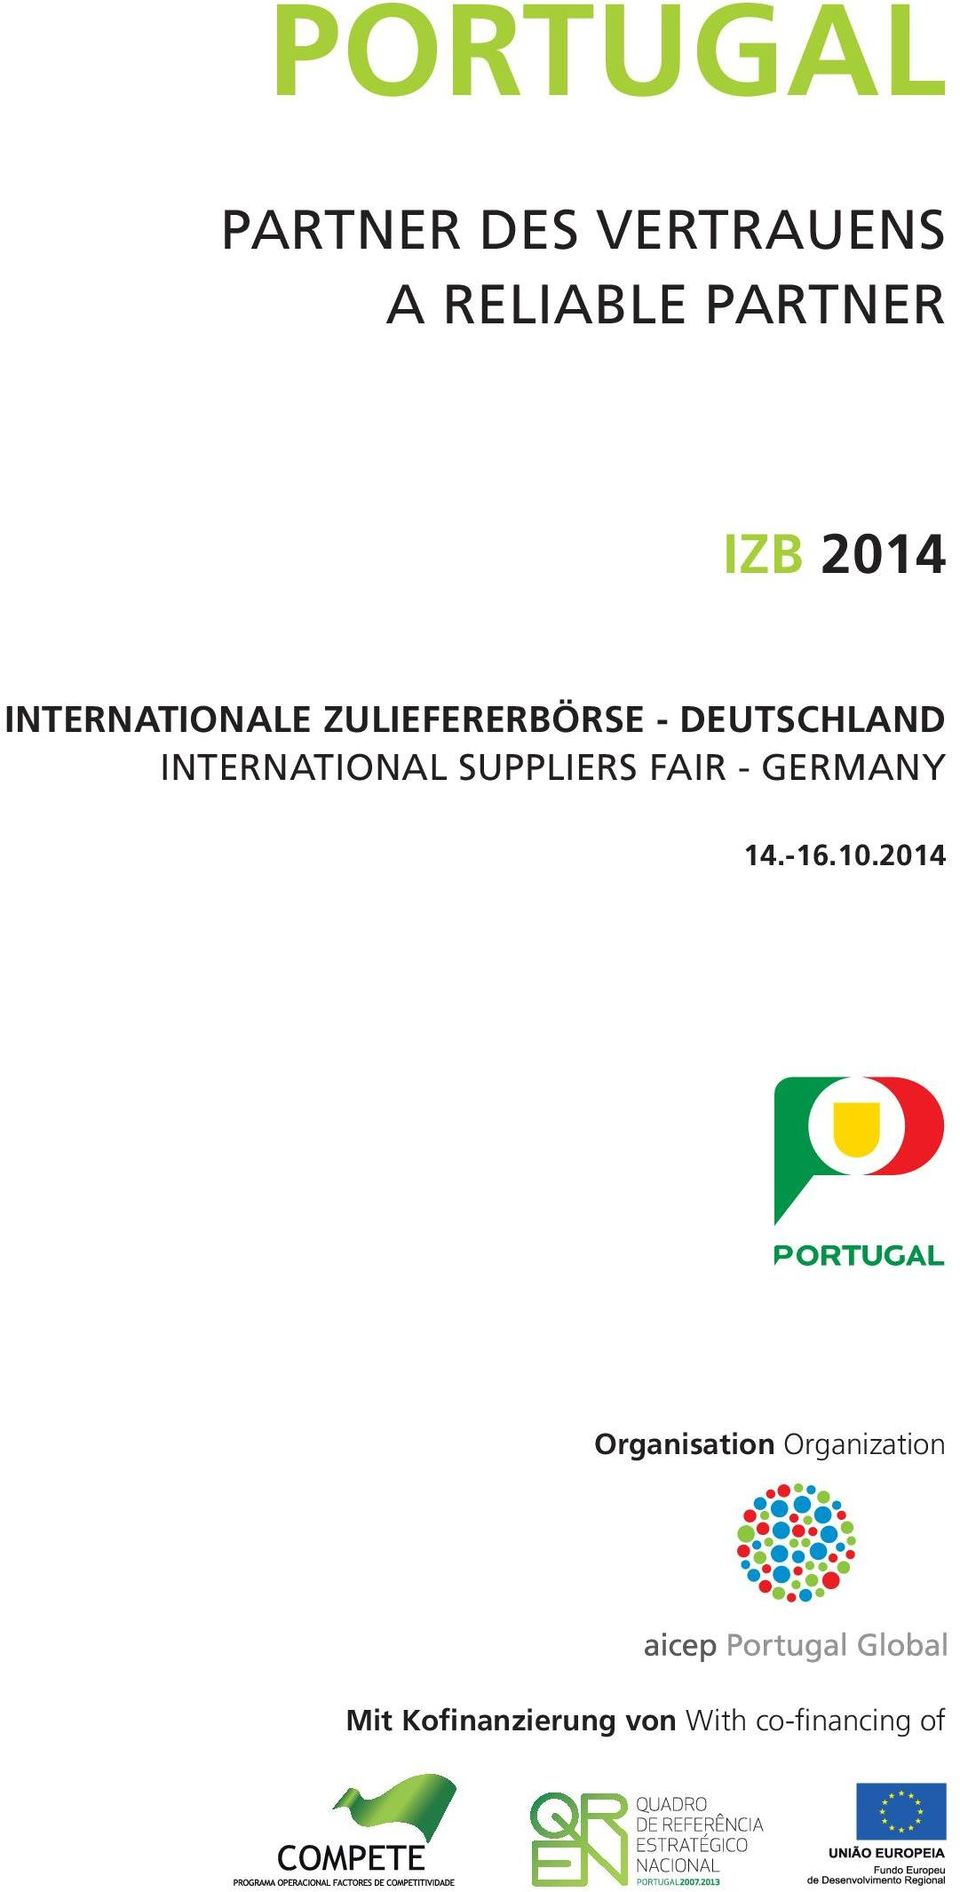 INTERNATIONAL SUPPLIERS FAIR - GERMANY 14.-16.10.